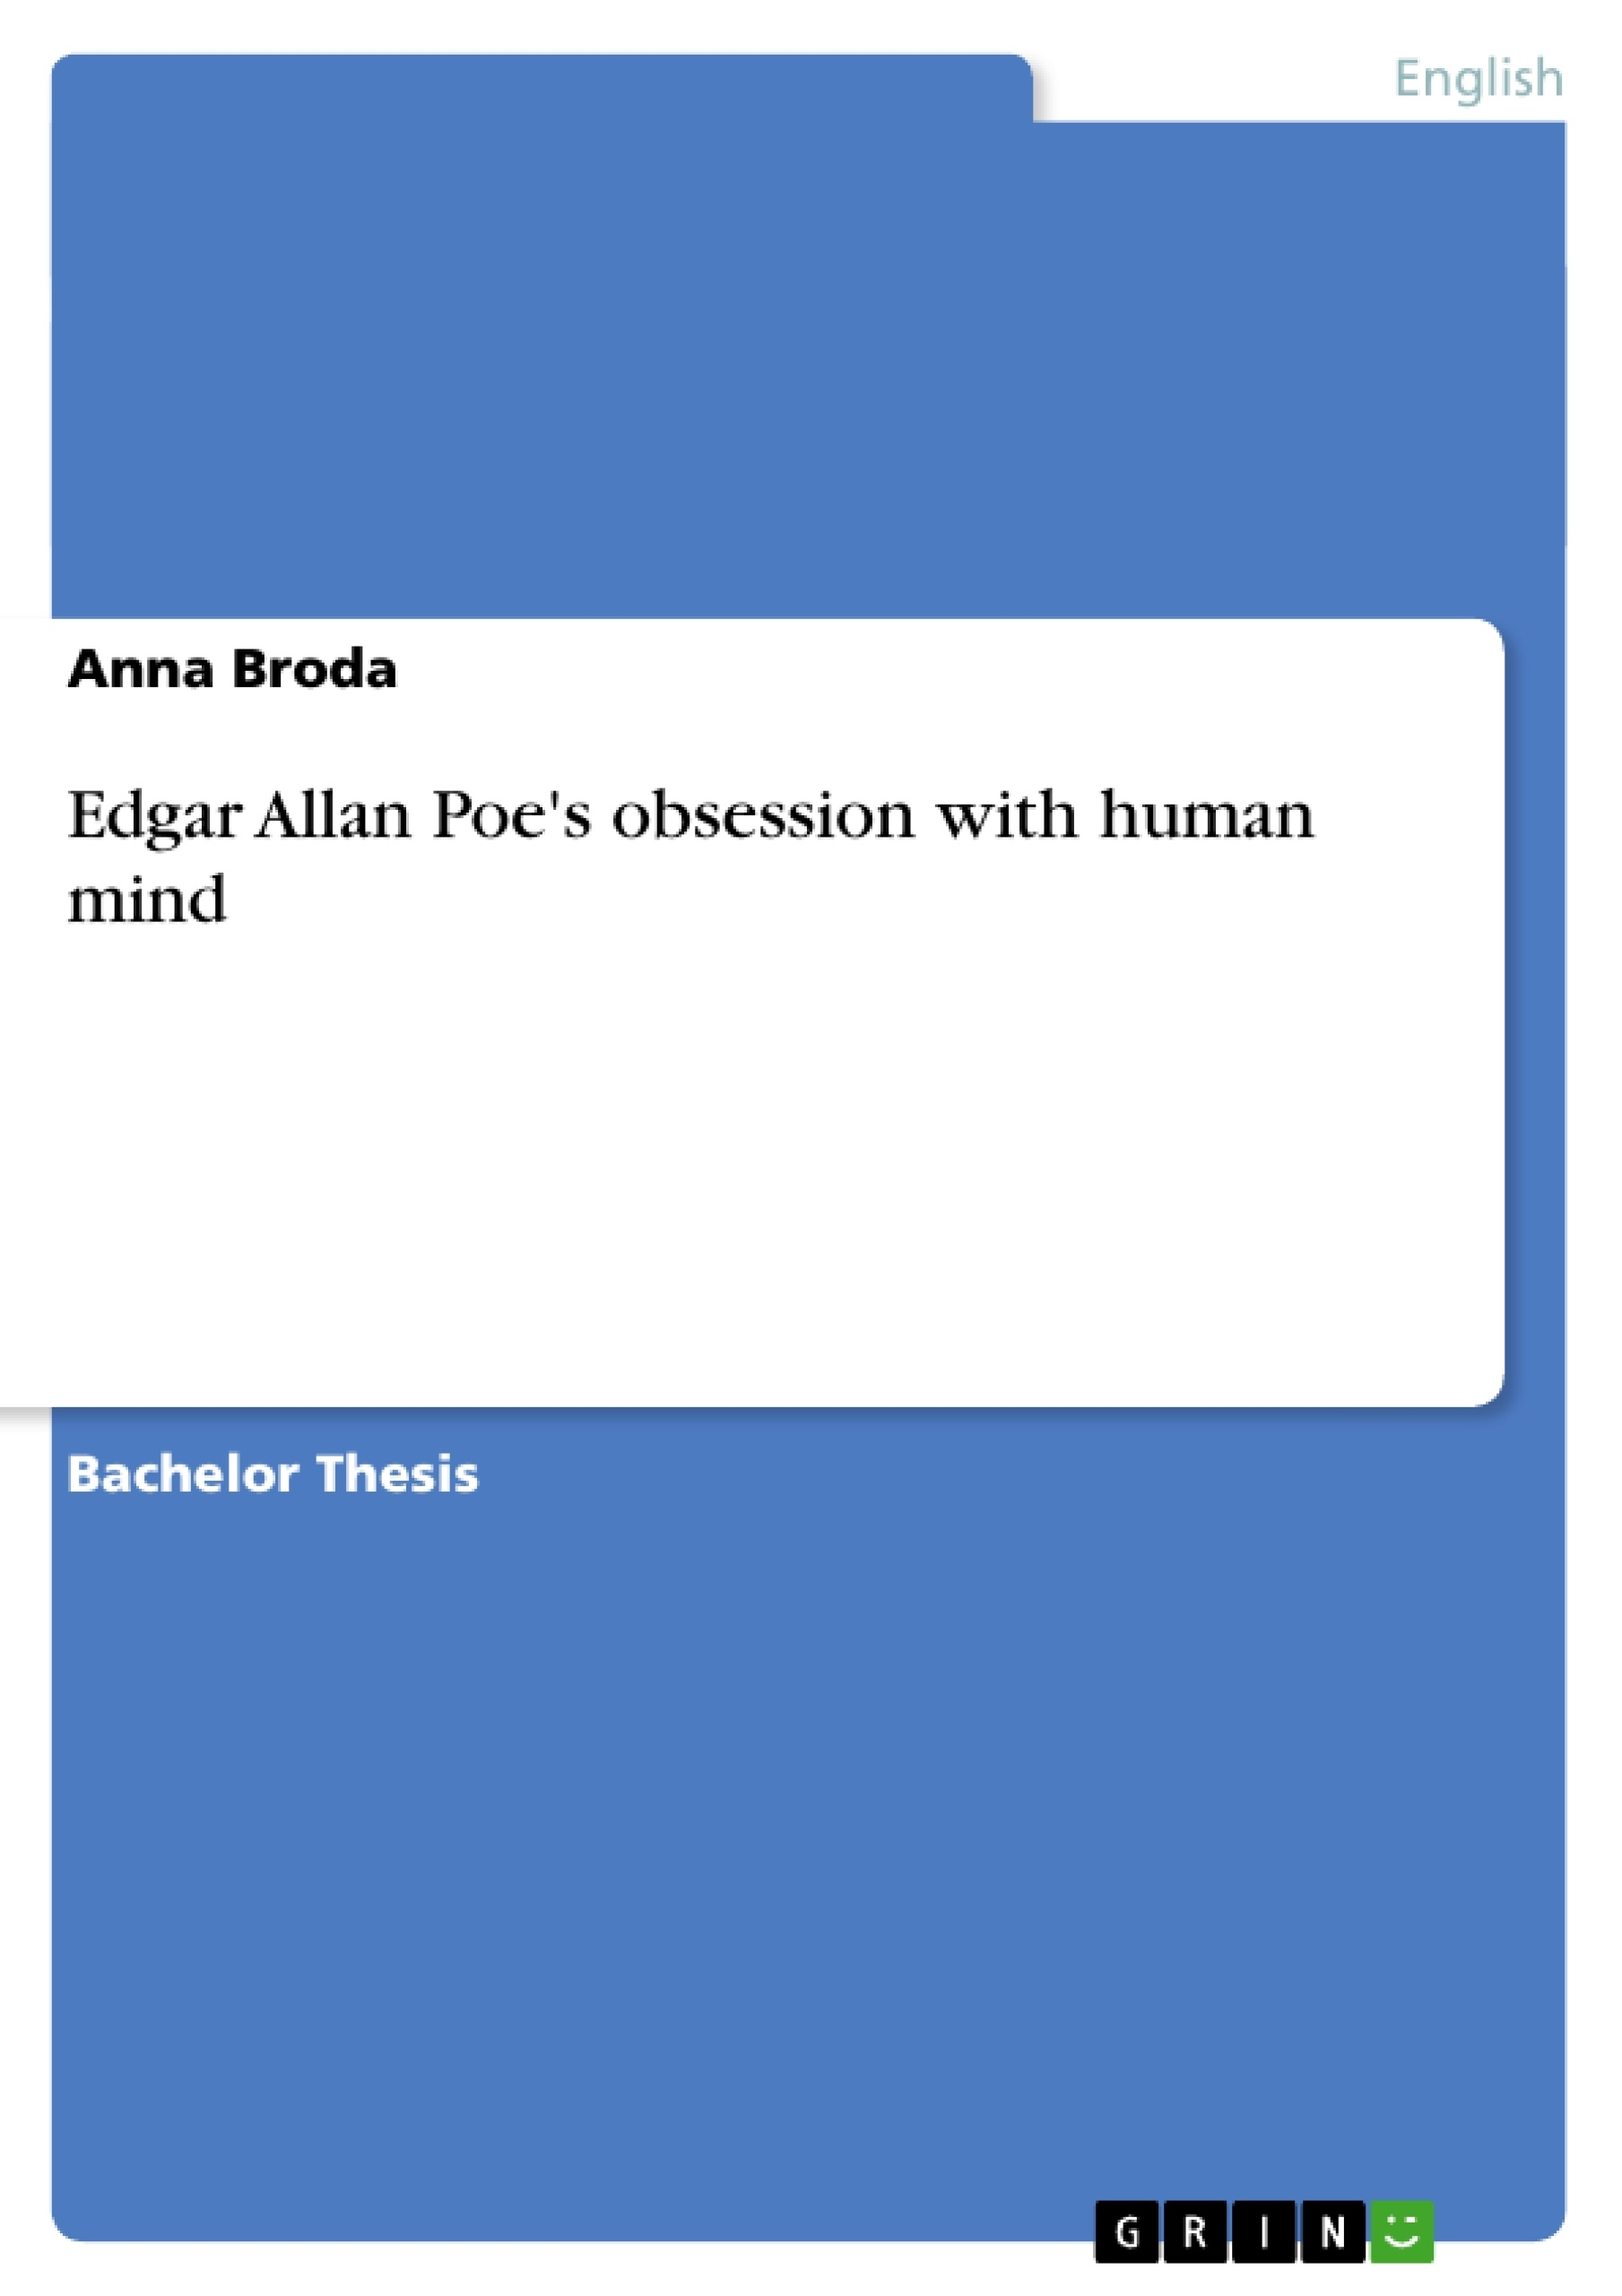 Title: Edgar Allan Poe's obsession with human mind